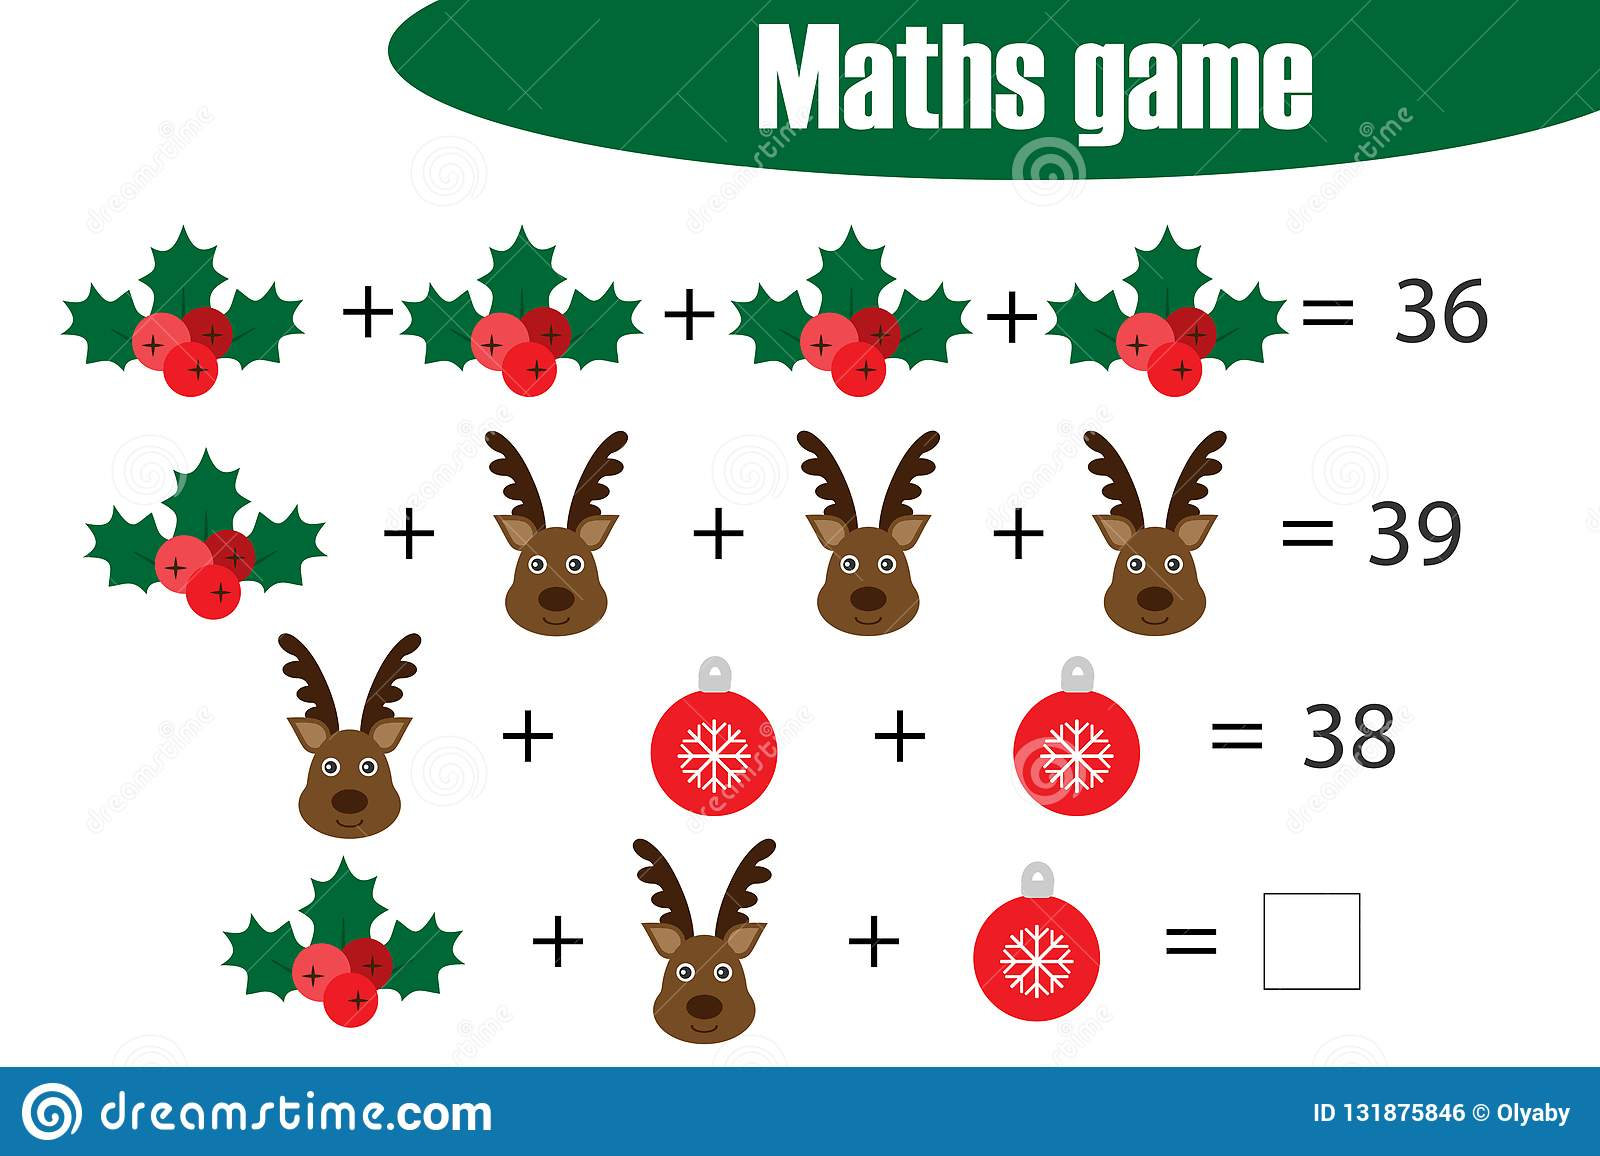 Maths Game With Pictures